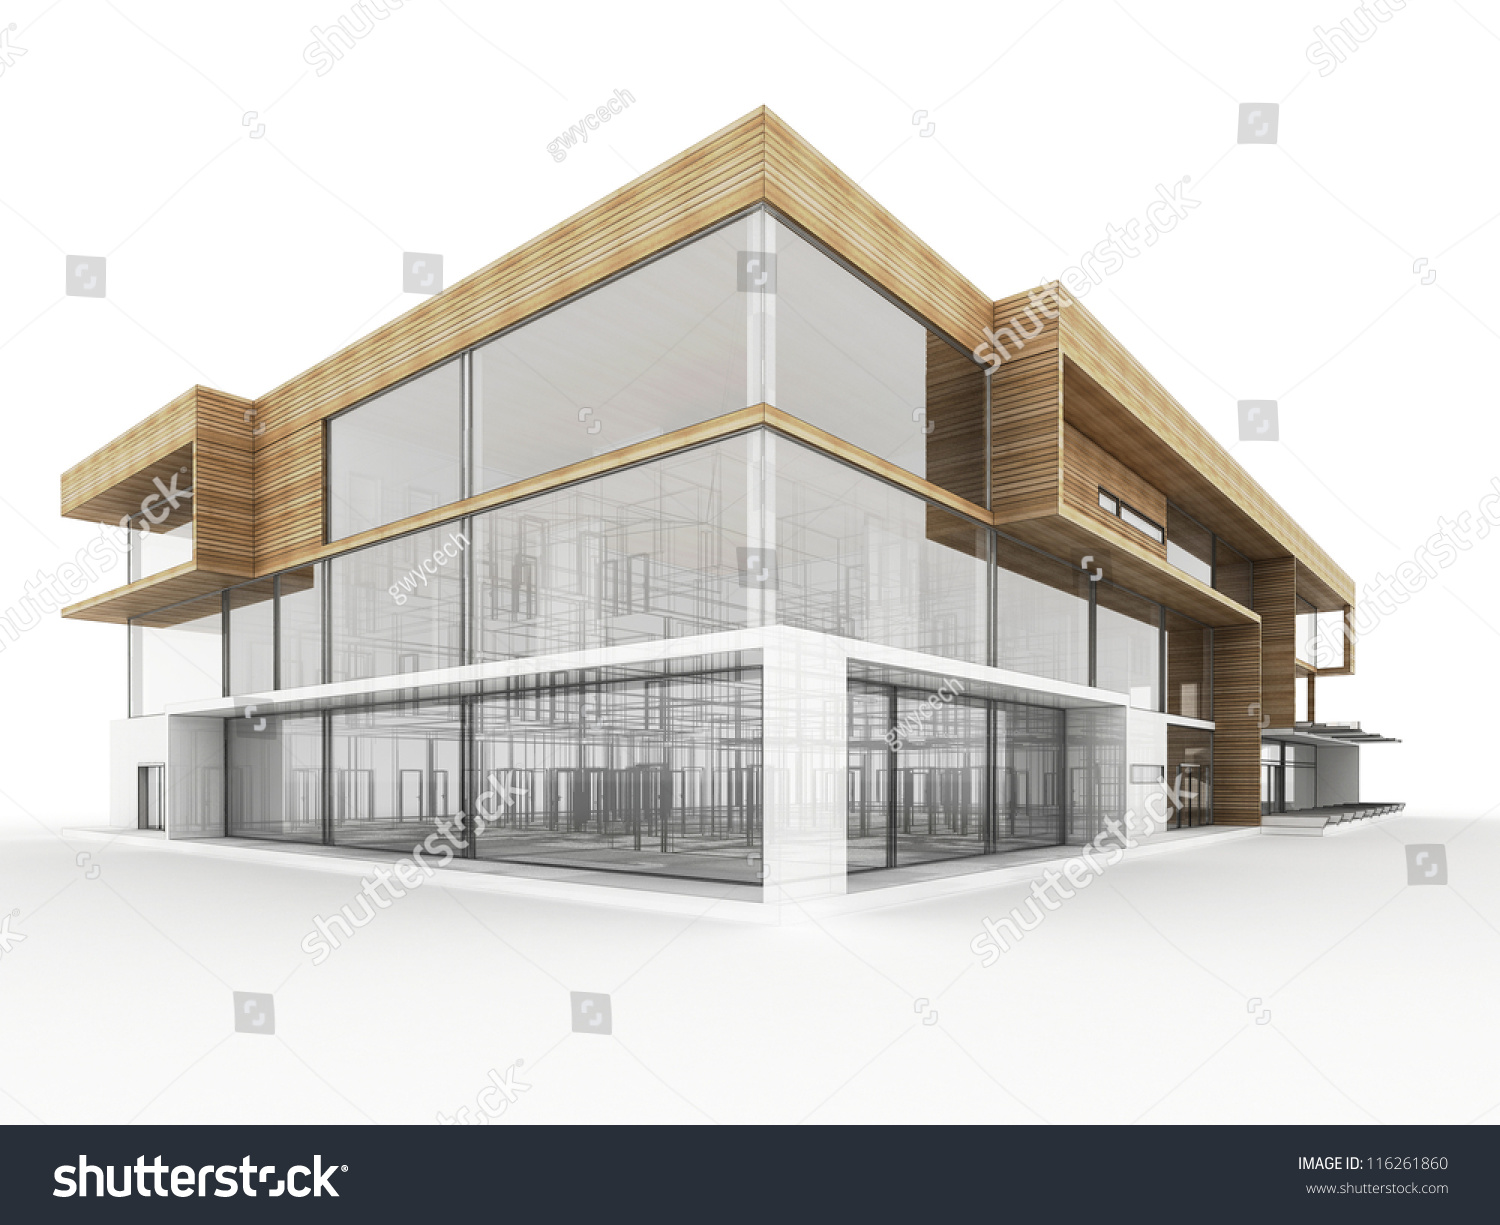 Design Of Modern Office Building Architects And Designers Computer